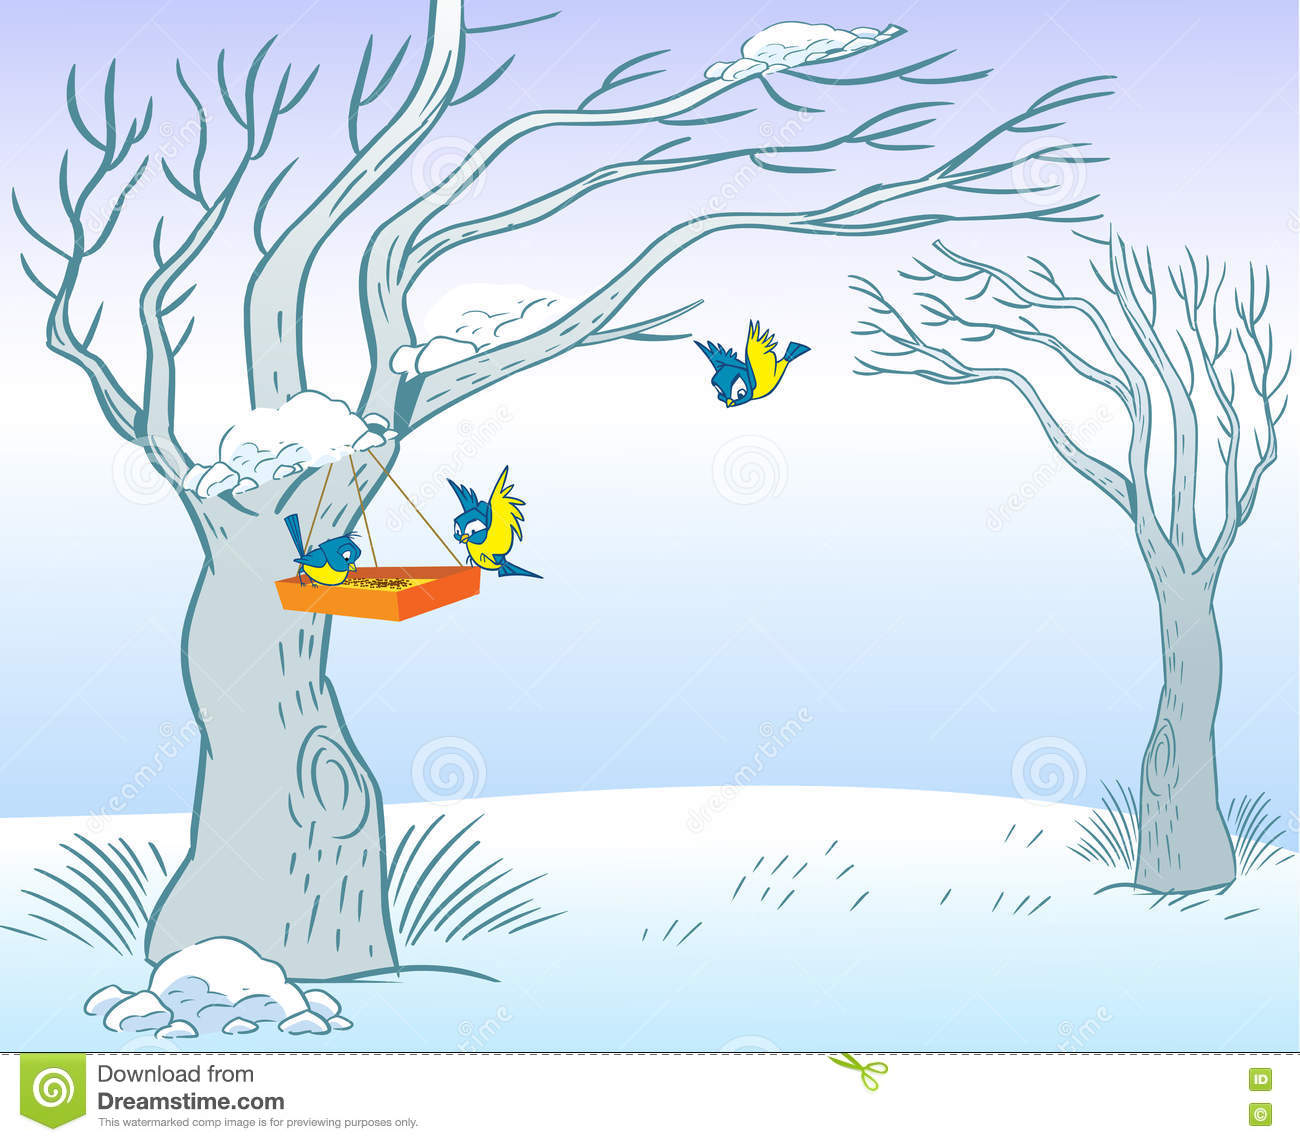 feeder for birds in winter stock vector. illustration of vector